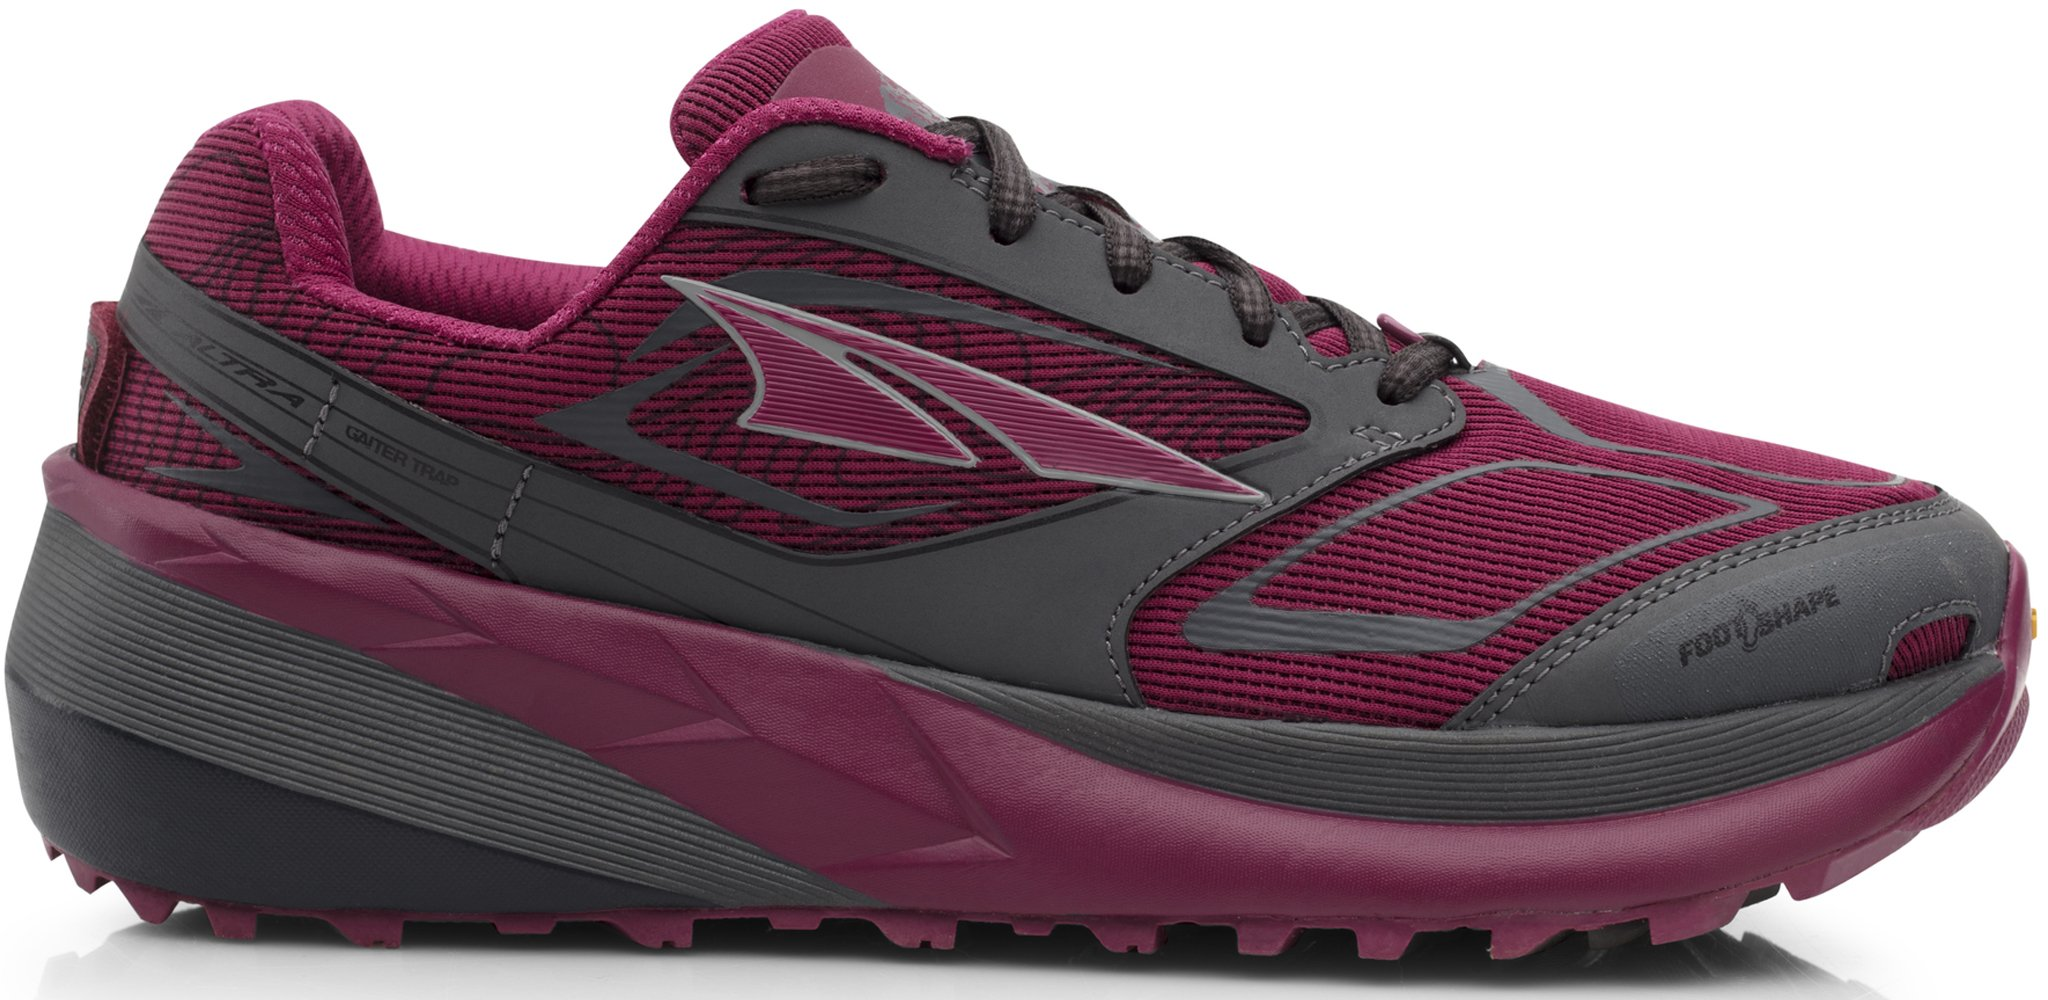 Altra AFW1859F Women's Olympus 3 Trail Running Shoe, Raspberry - 11 B(M) US by Altra (Image #1)